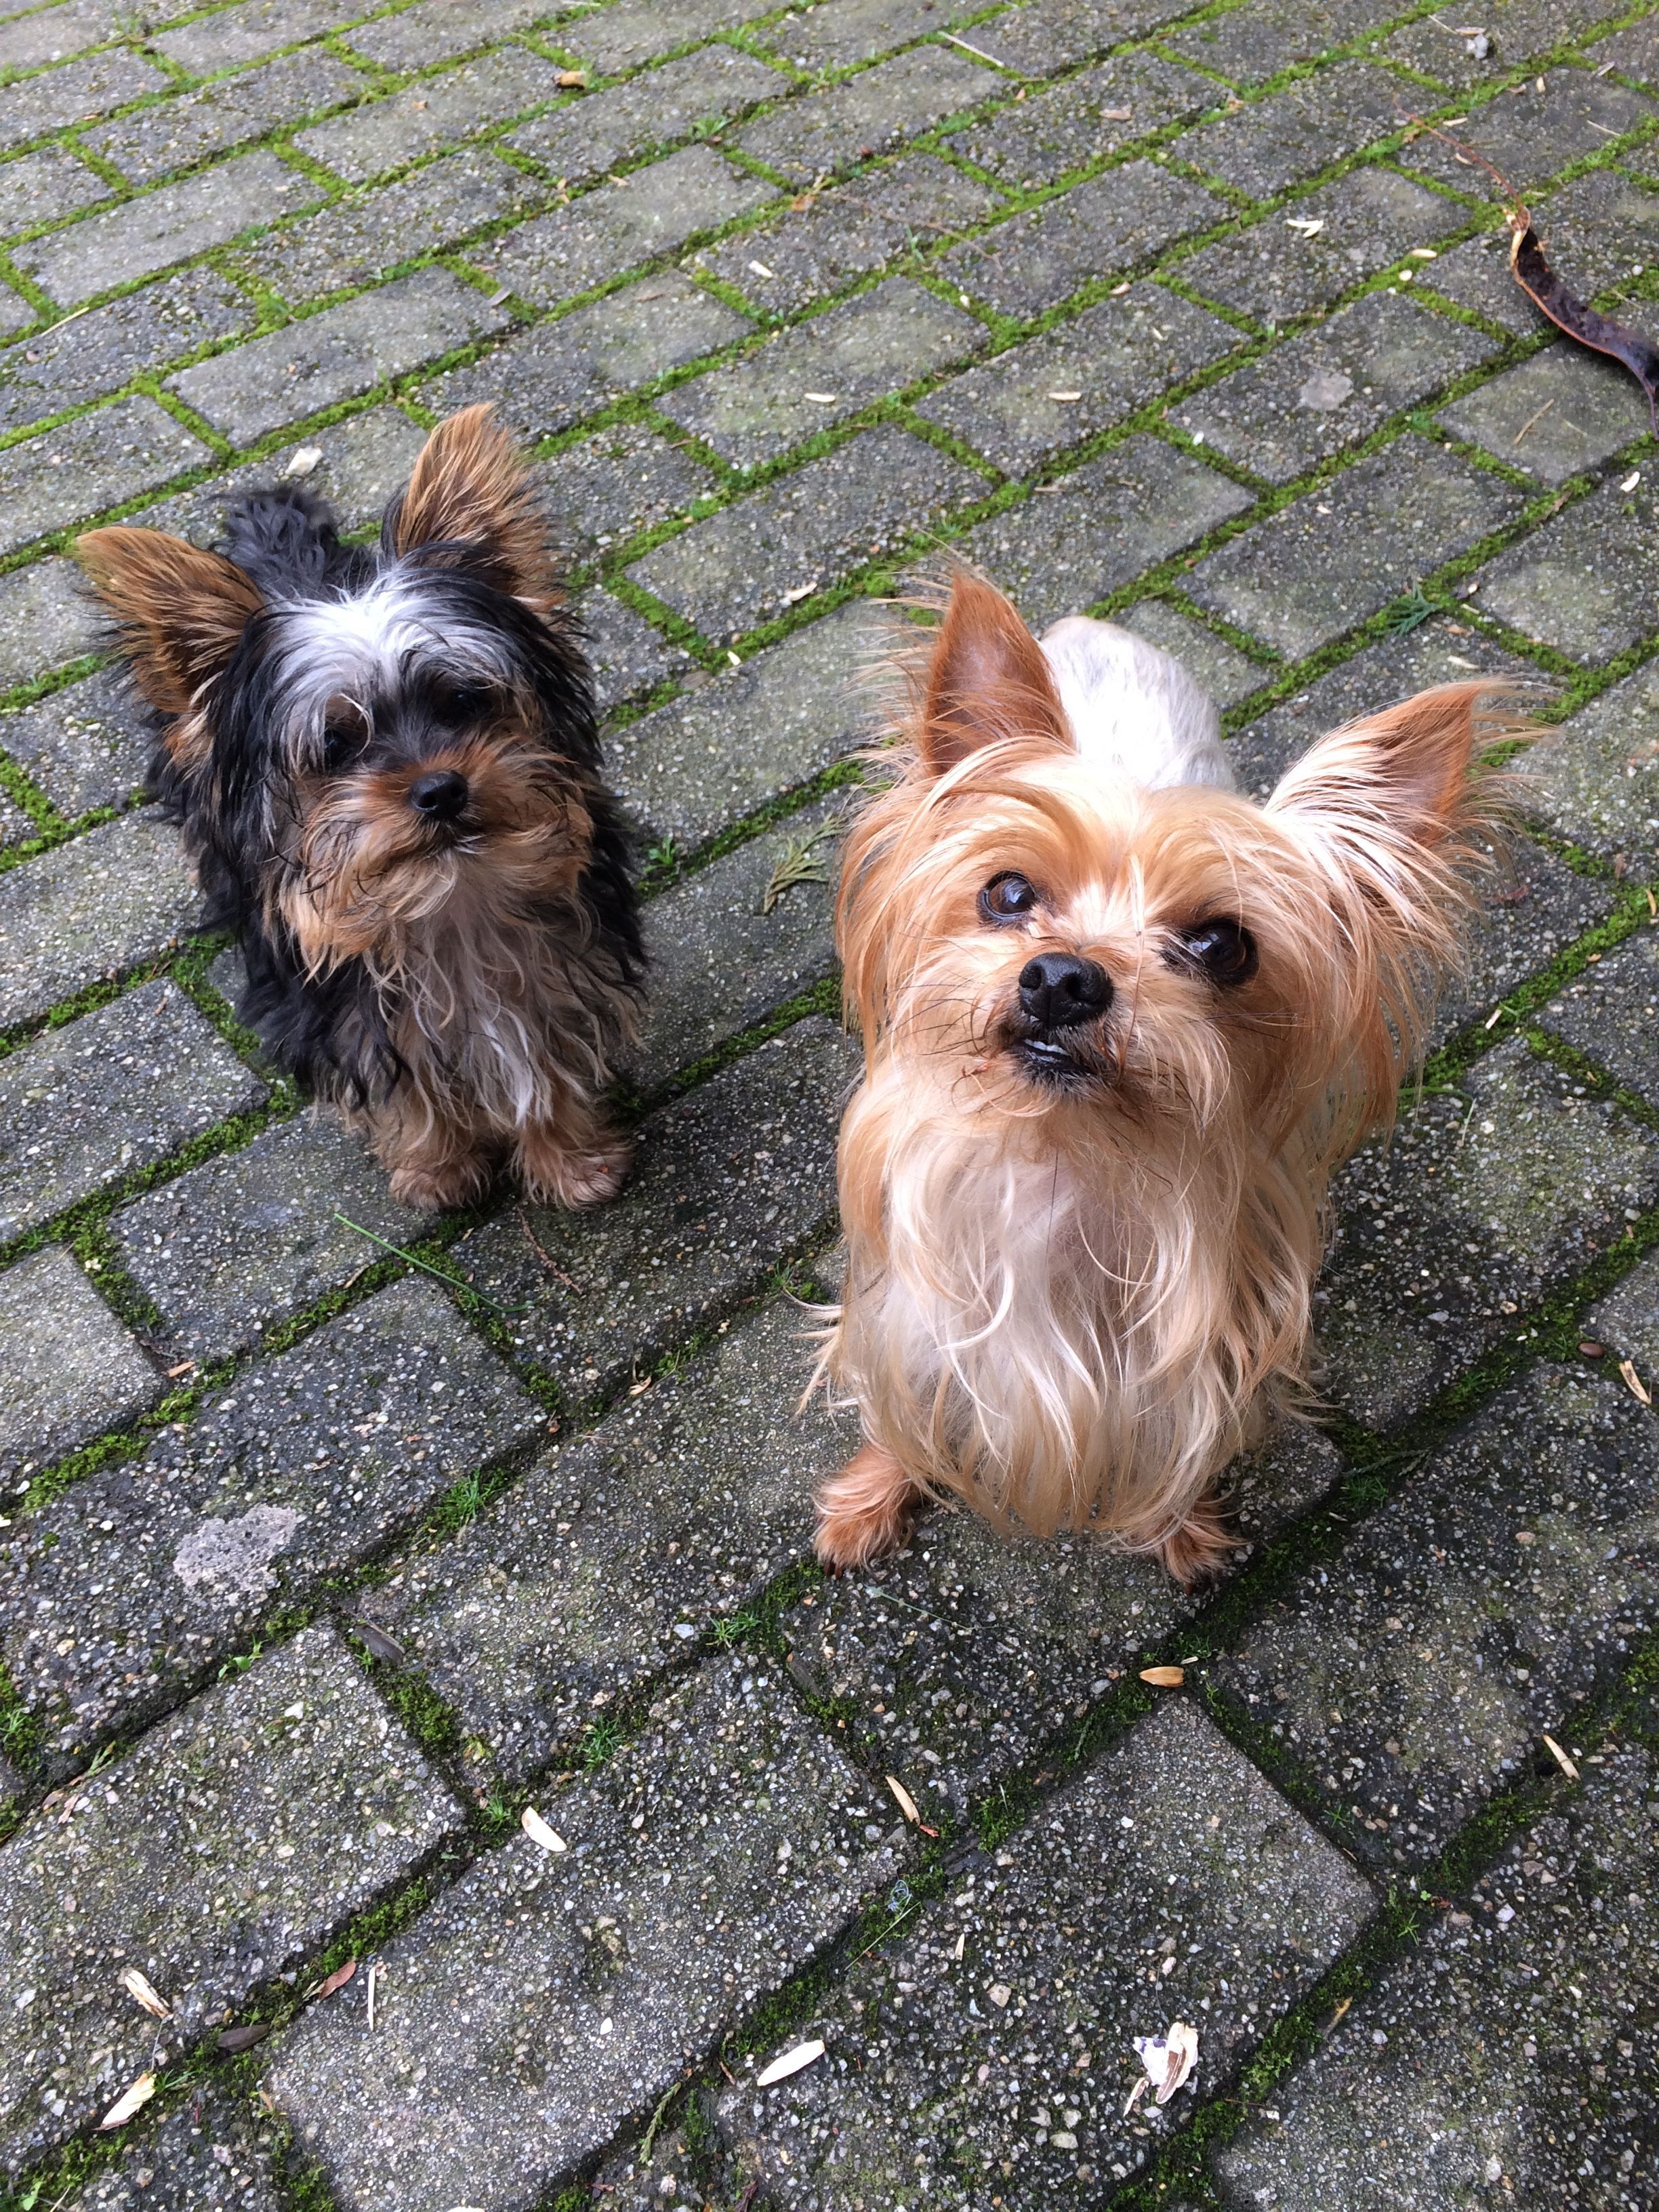 Pin by The Dogs on Yorkshire Terrier   Pinterest   Yorkshire terrier ...